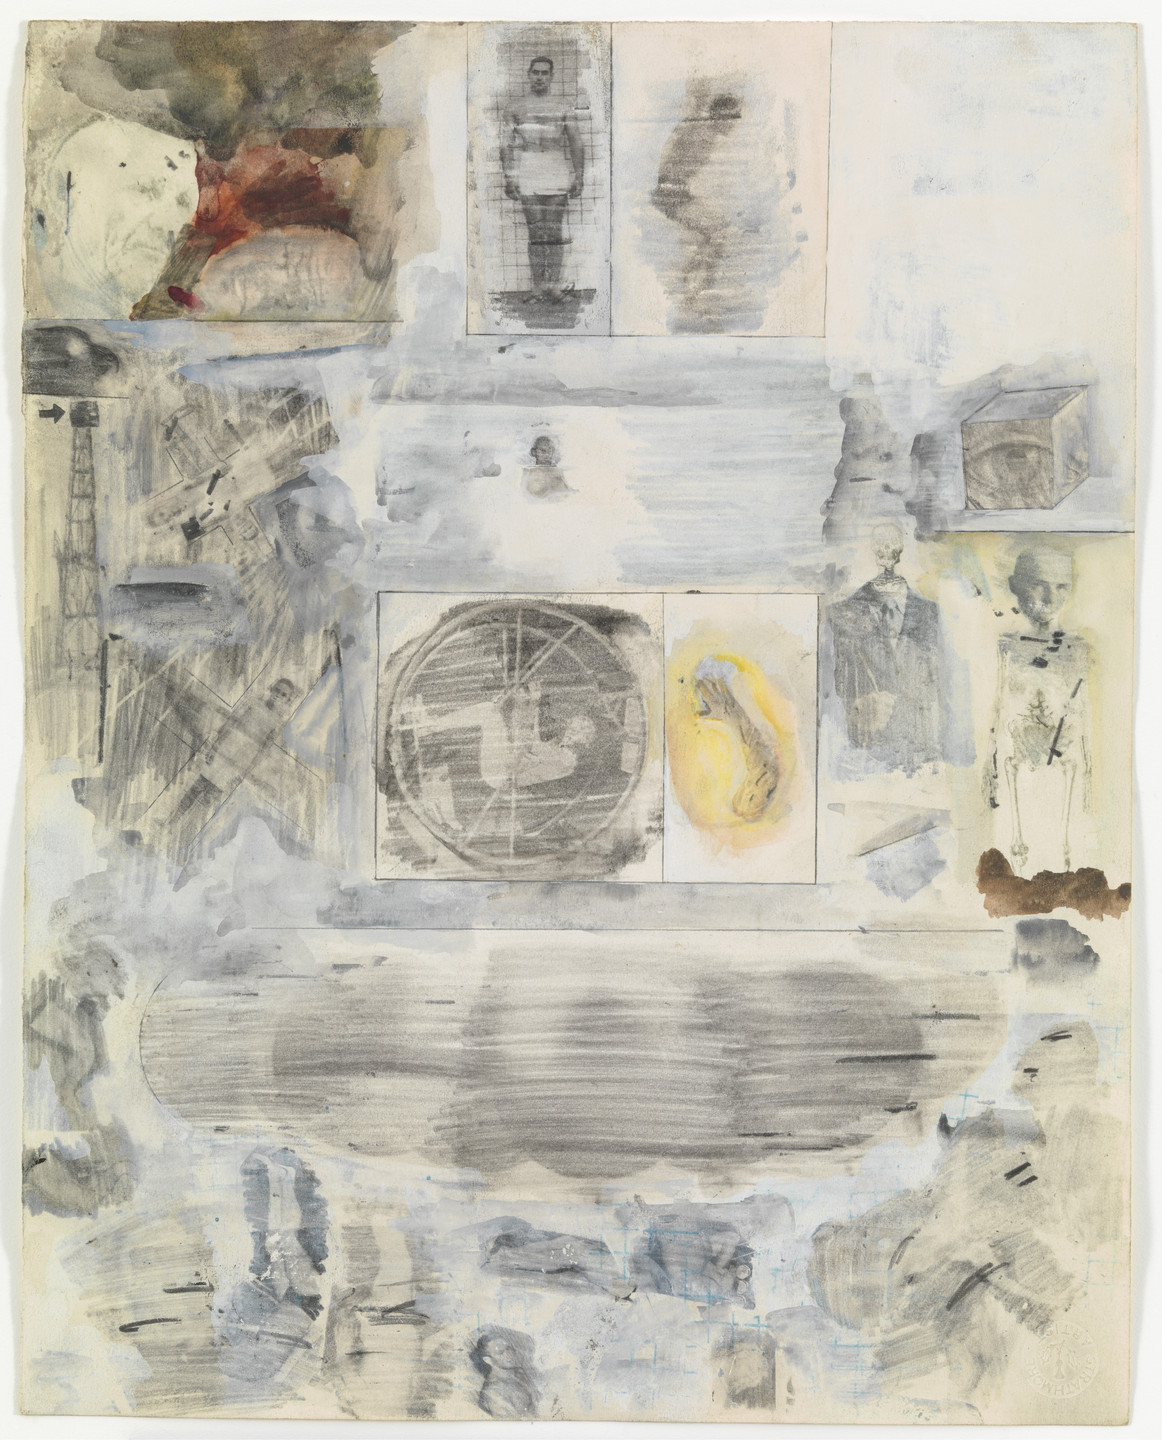 Robert Rauschenberg. Canto XXXIII: Circle Nine, Cocytus, Compound Fraud: Round 2, Antenora, Treacherous to Country; Round 3, Ptolomea, Treacherous to Guests and Hosts from the series Thirty-Four Illustrations for Dante's Inferno. (1959-60)